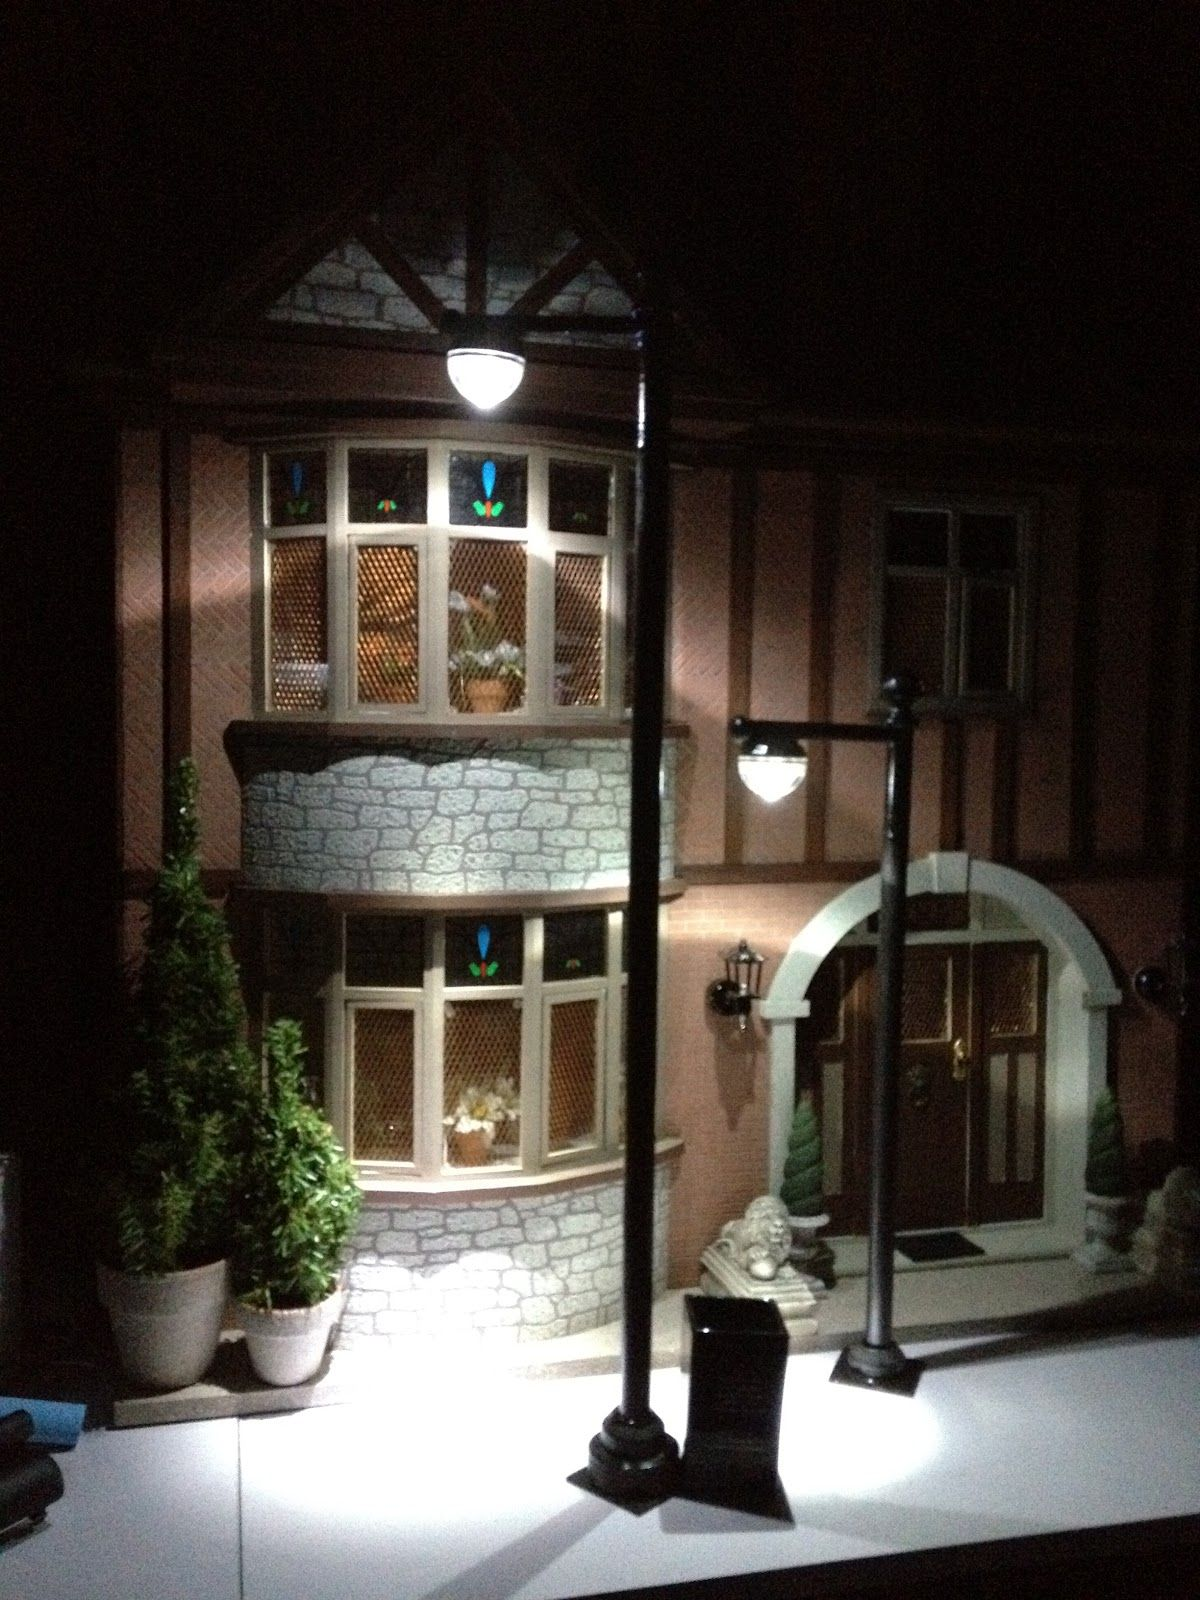 Jocelyn S Mountfield Dollhouse Street Lamp Post Made Using Battery Operated Floral Led Lights Haus Bauen Led Leuchten Und Wohnideen